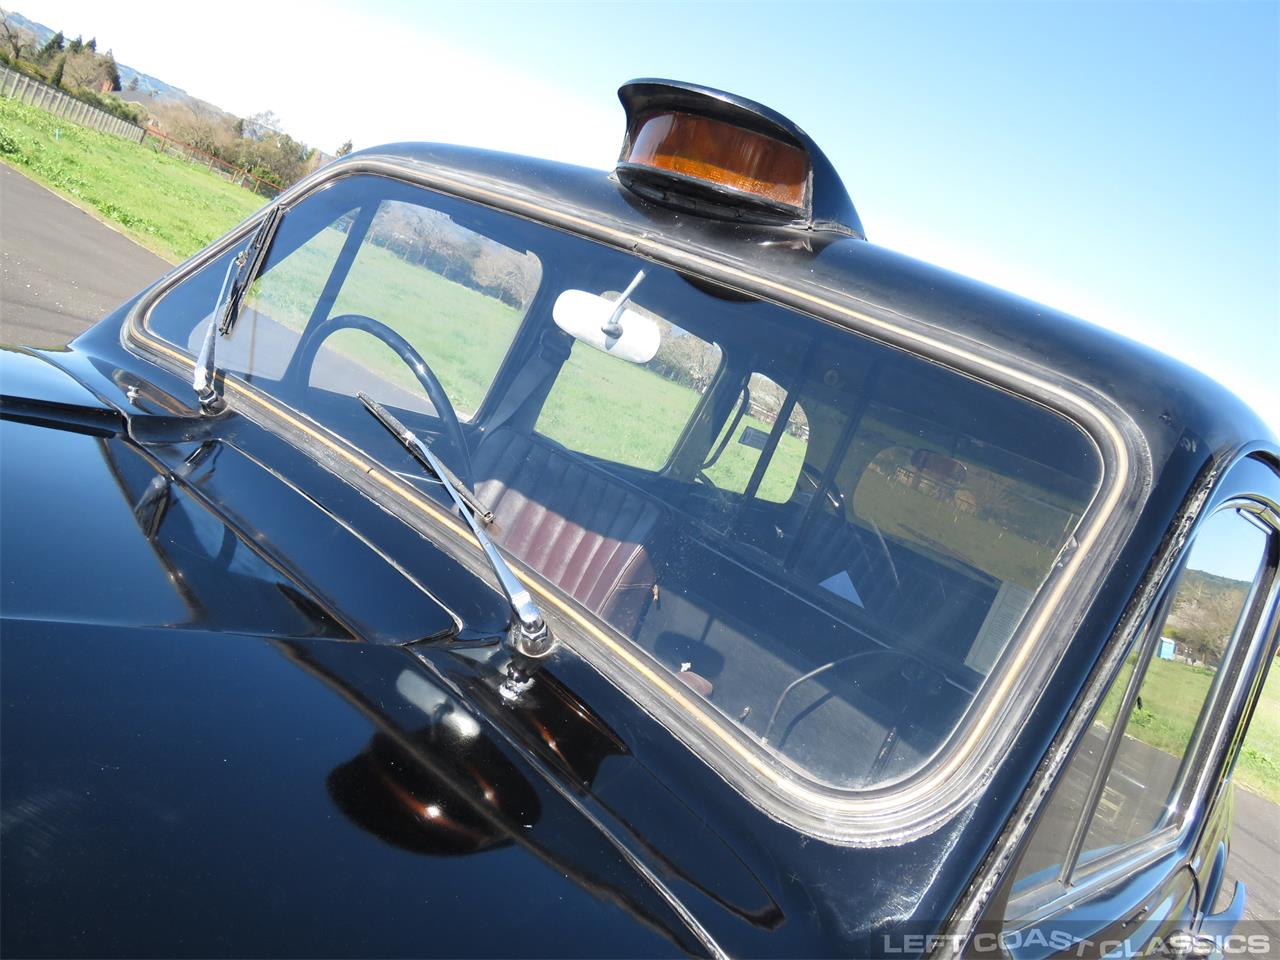 Large Picture of Classic '67 FX4 Taxi Cab located in California - $12,500.00 - PKBX